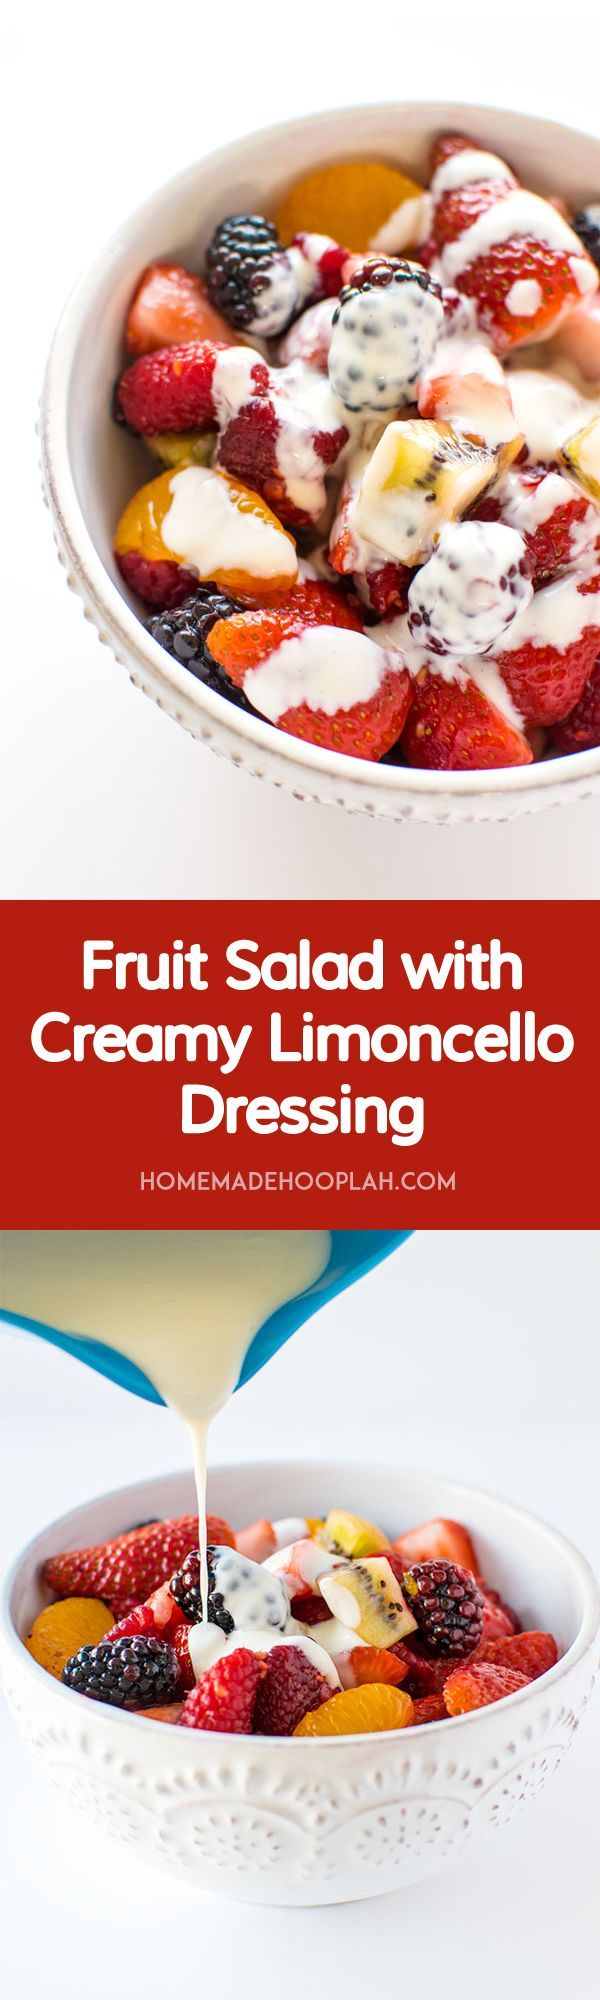 Fruit Salad with Creamy Limoncello Dressing! Colorful fruit salad drizzled with a sweet, creamy dressing infused with limoncello! | HomemadeHooplah.com